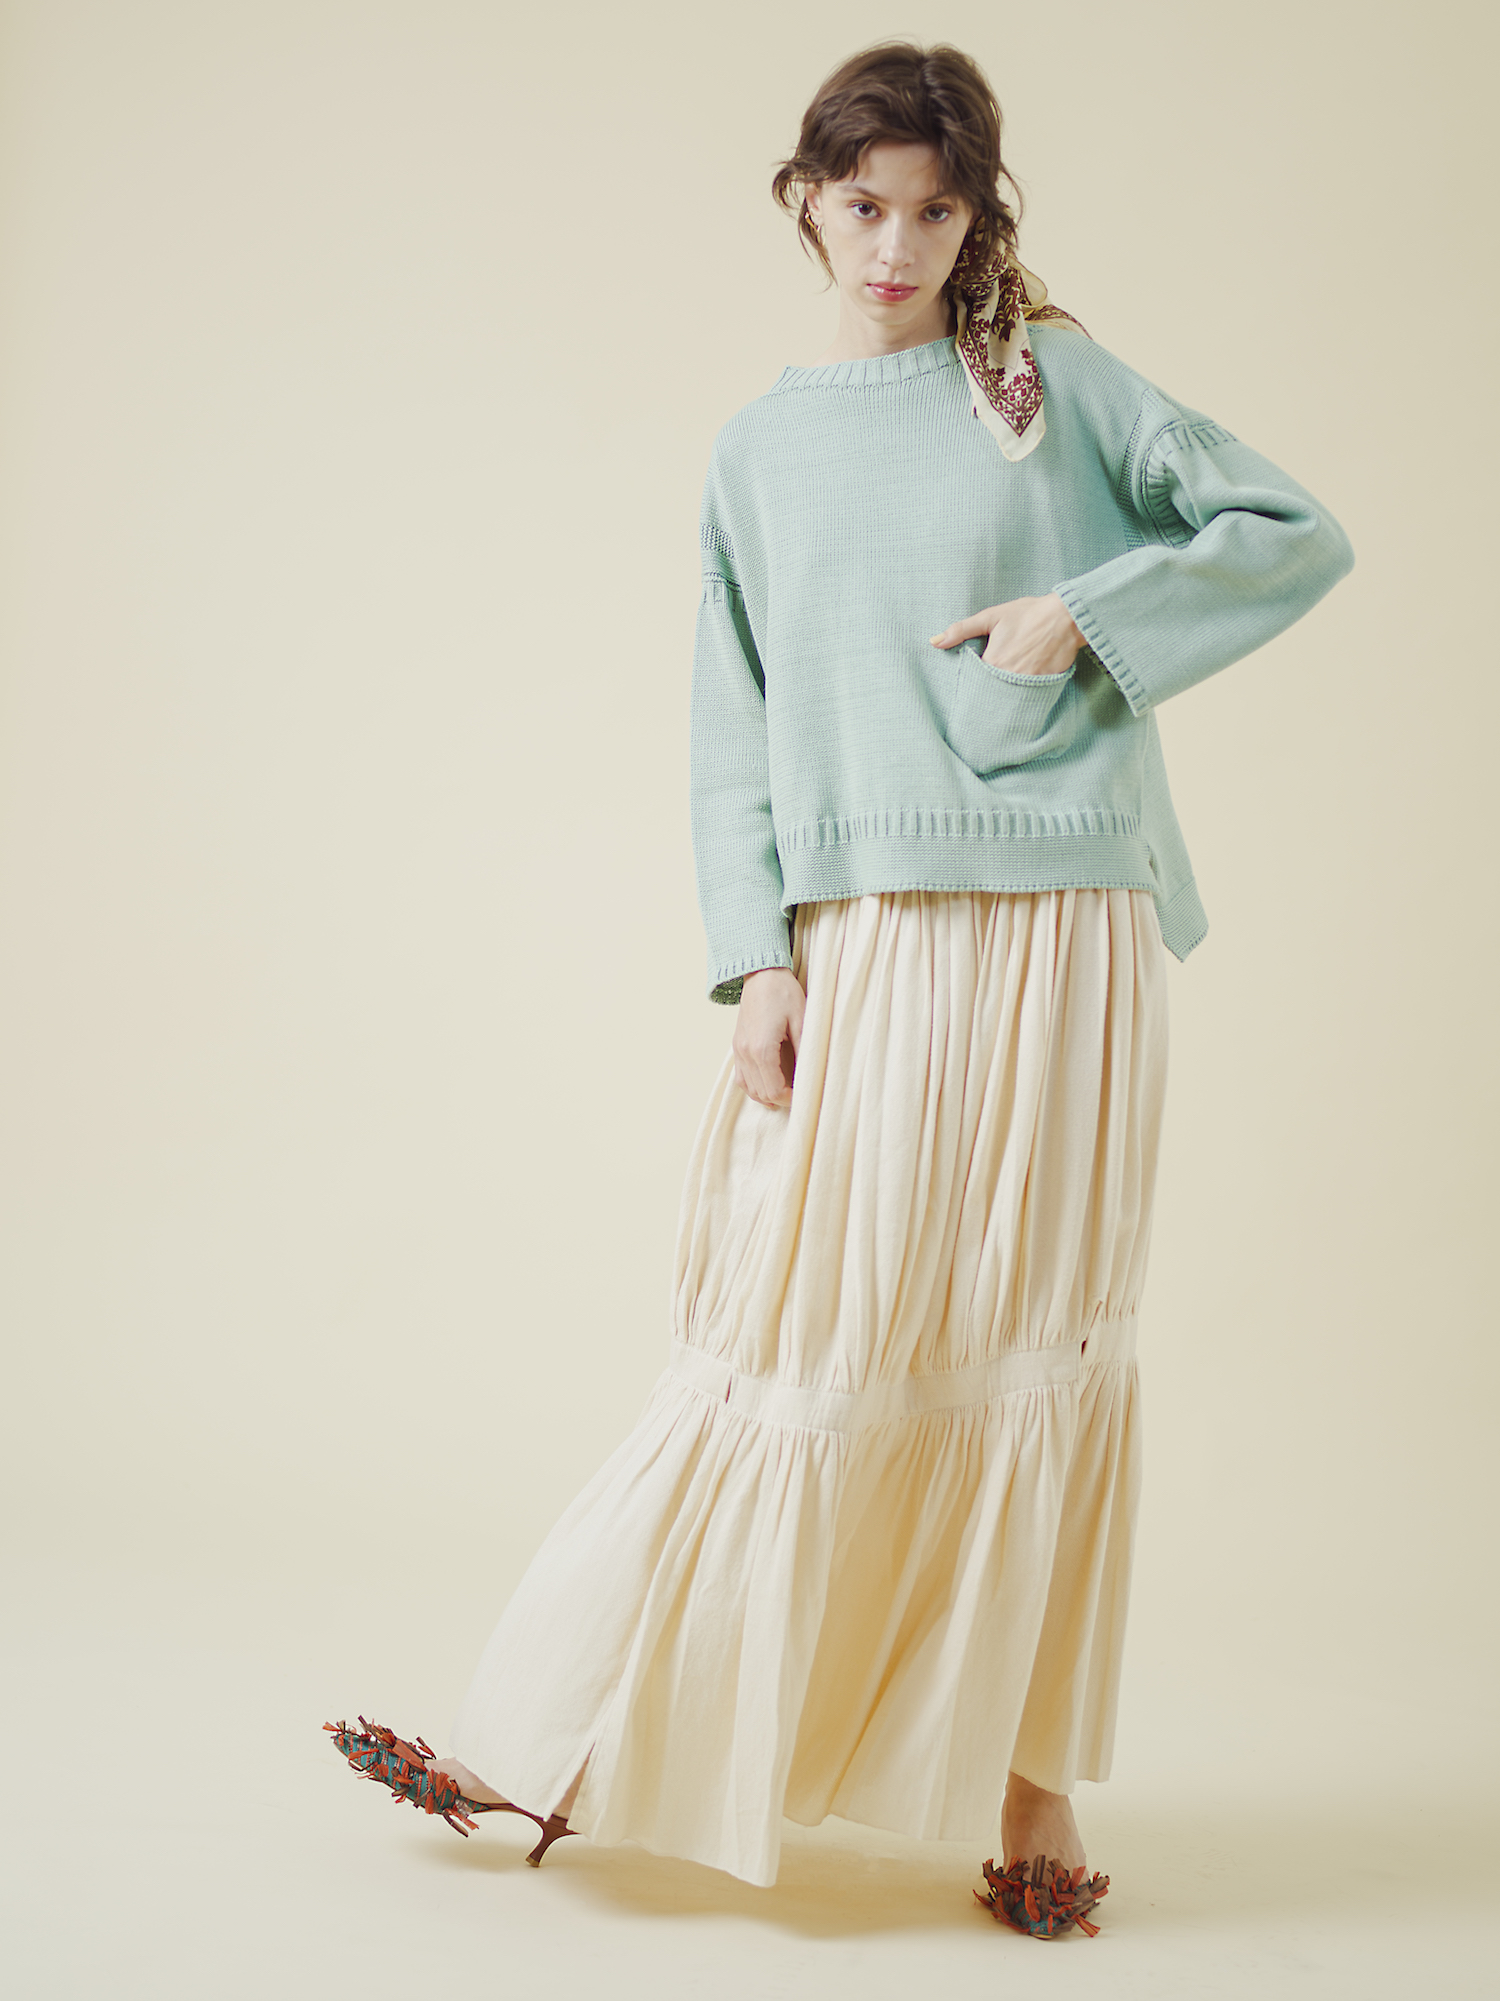 19 knit¥20,000  skirt¥47,000  scarf¥4,000  shoes¥36,000